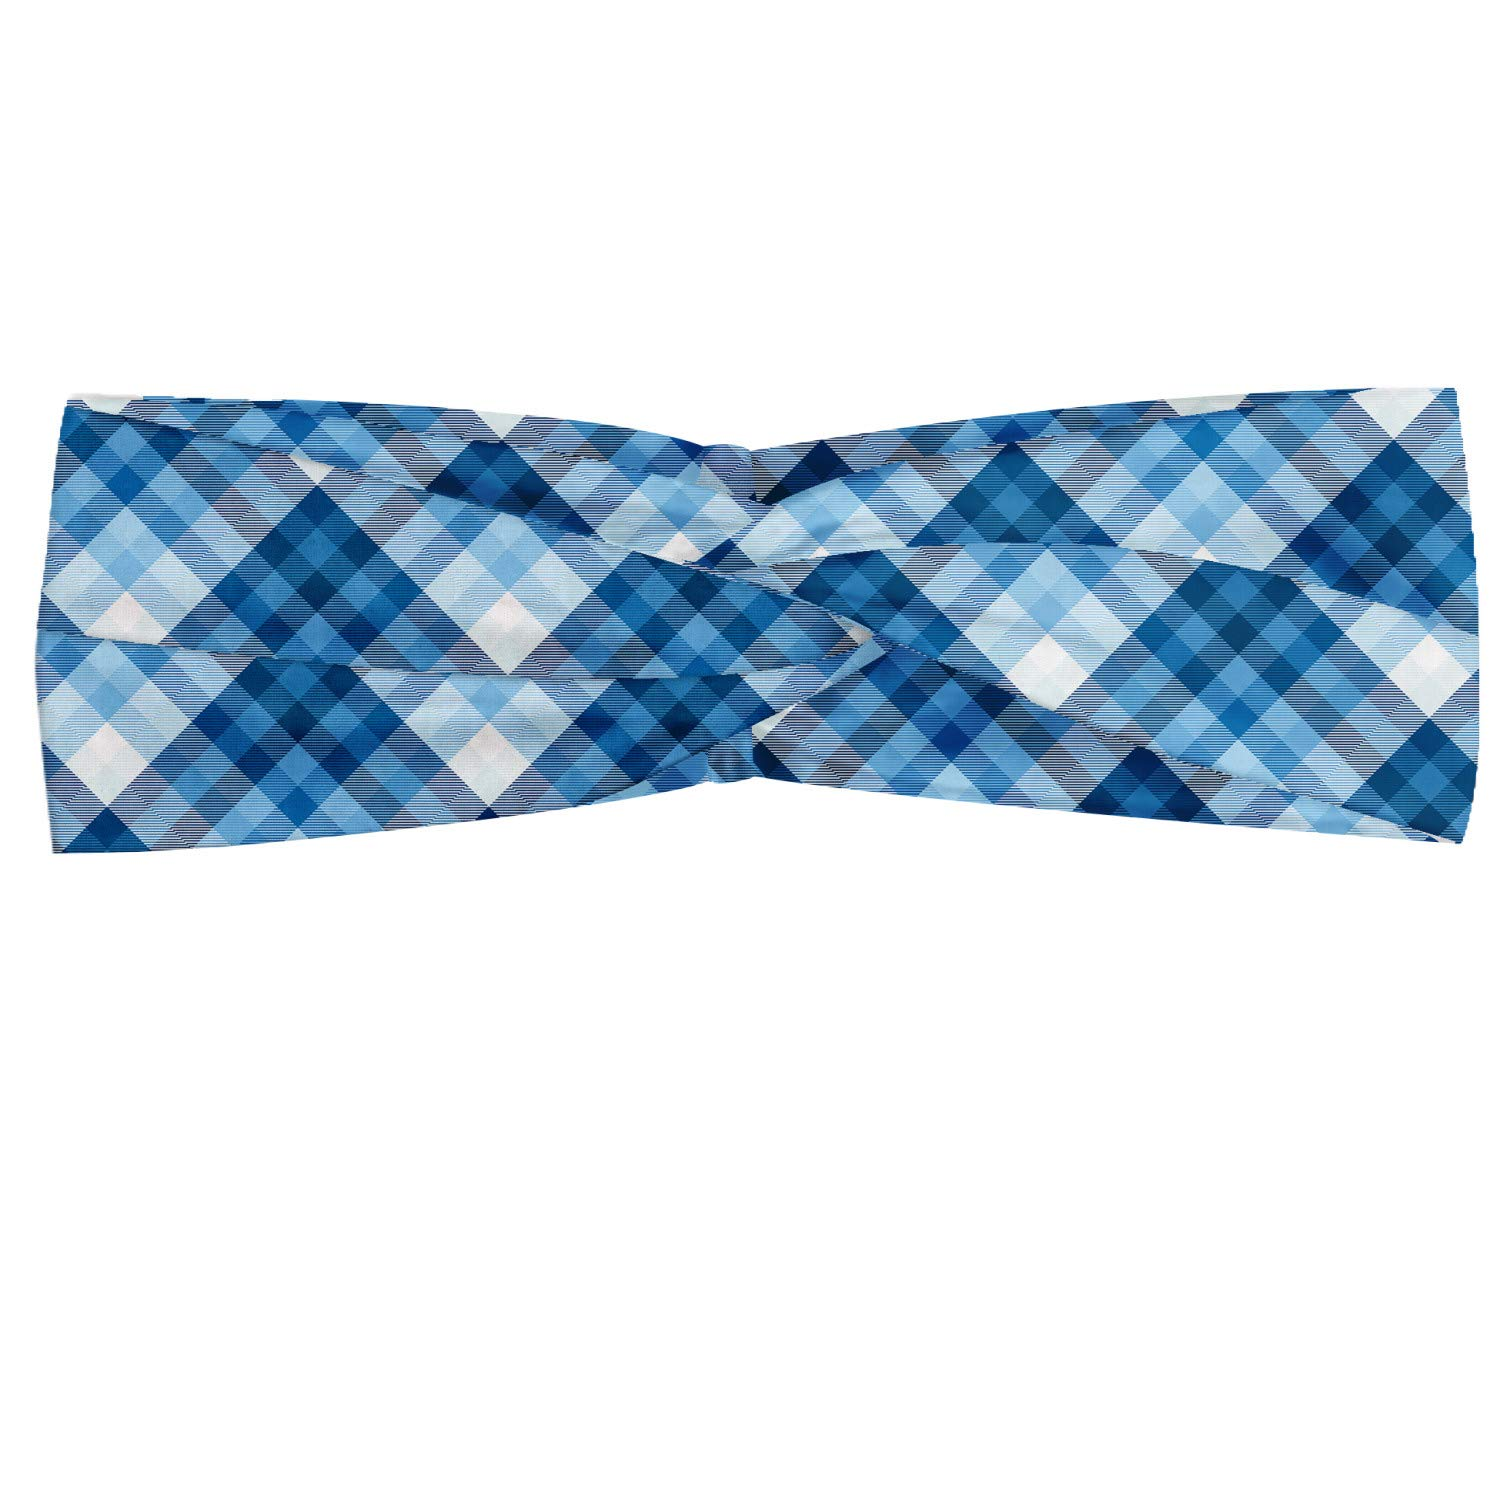 Ambesonne Navy Plaid Headband, Abstract Diagonal Lines Overlapped Squares Illustration, Elastic and Soft Women's Bandana for Sports and Everyday Use, Sky Blue Sky Blue